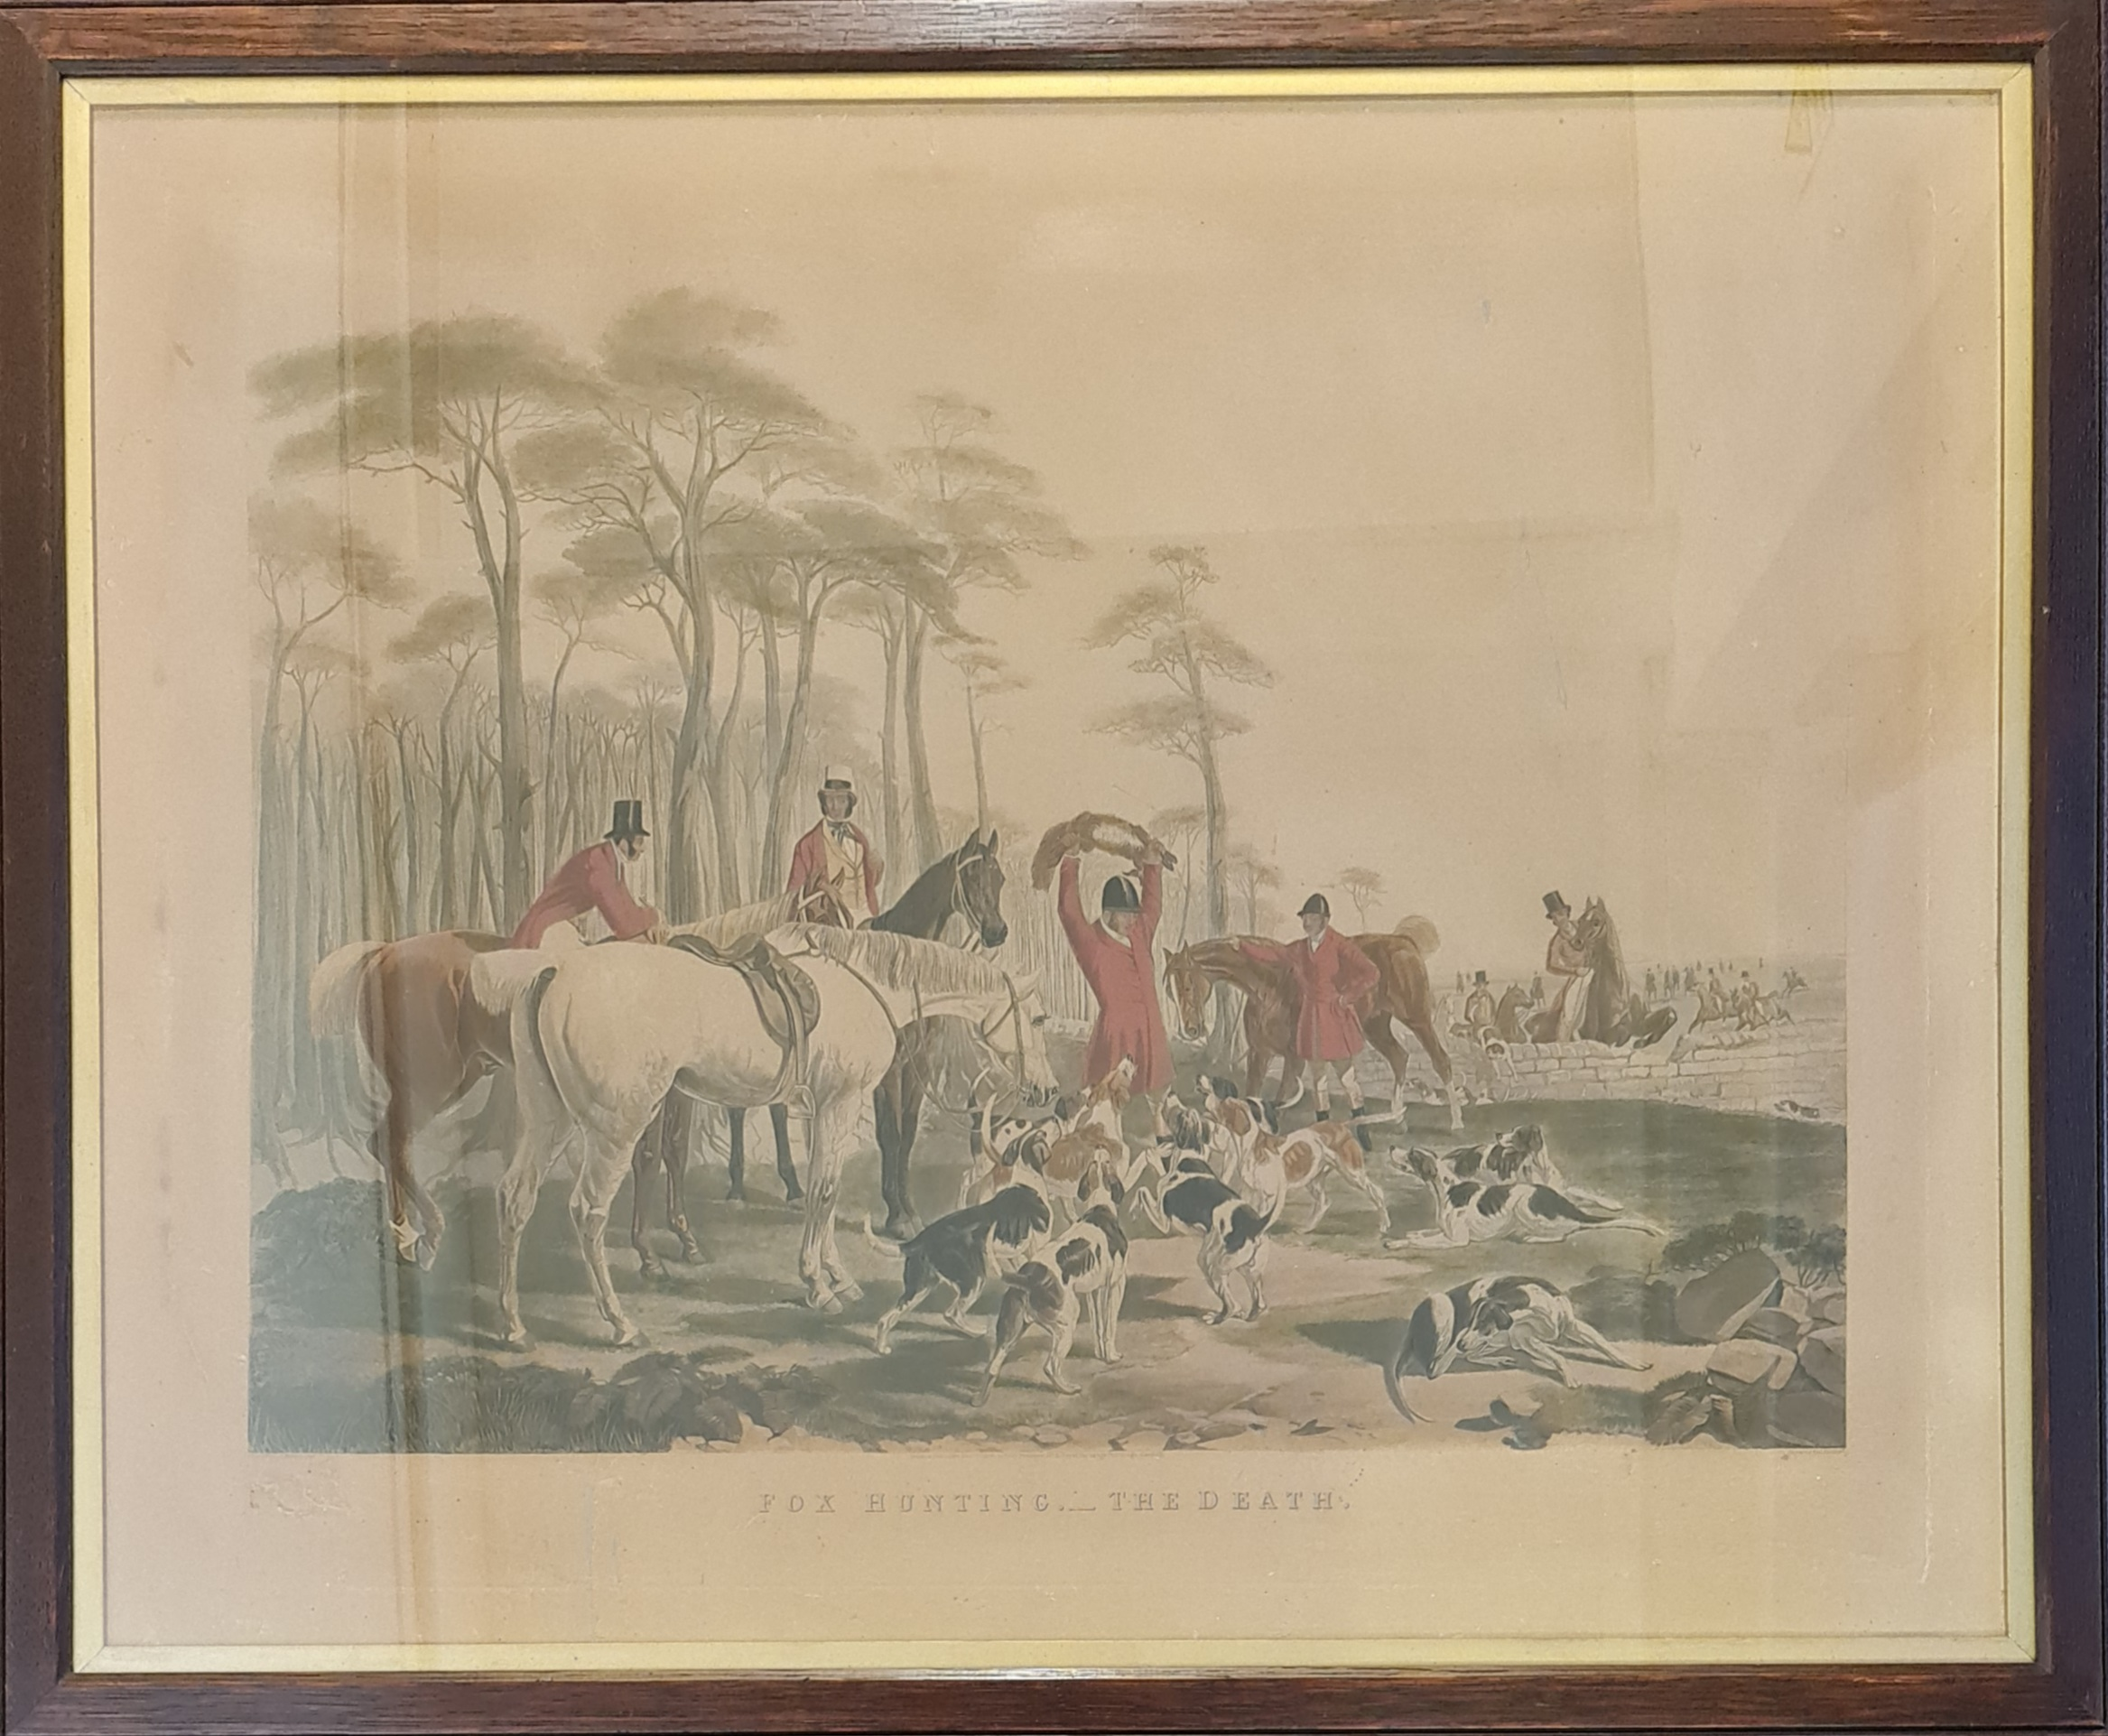 Framed fox hunting print, titled 'The Death', painted by J. F. Herring Snr, engraved by J. Mackrell,